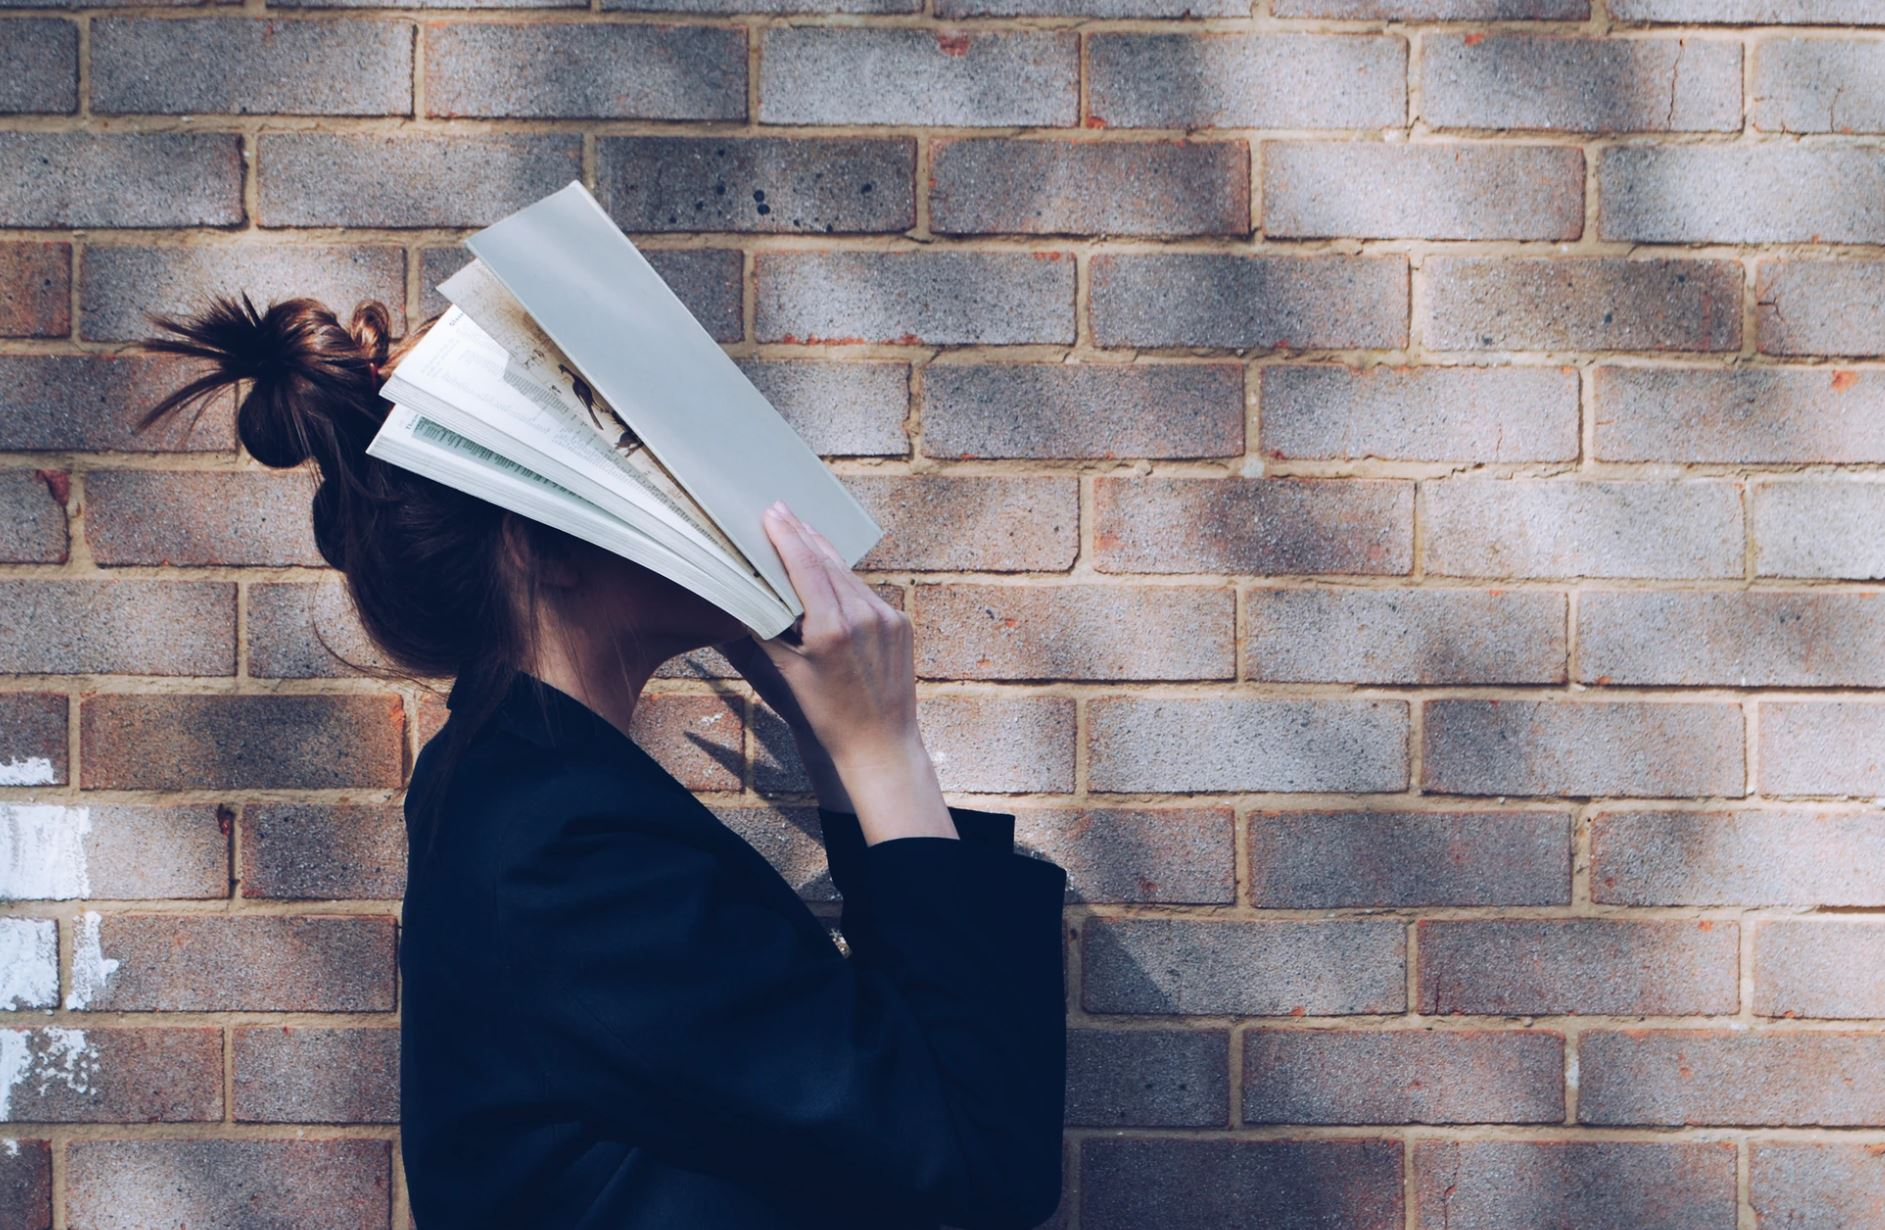 A student with a book | Siora Photography/Unsplash